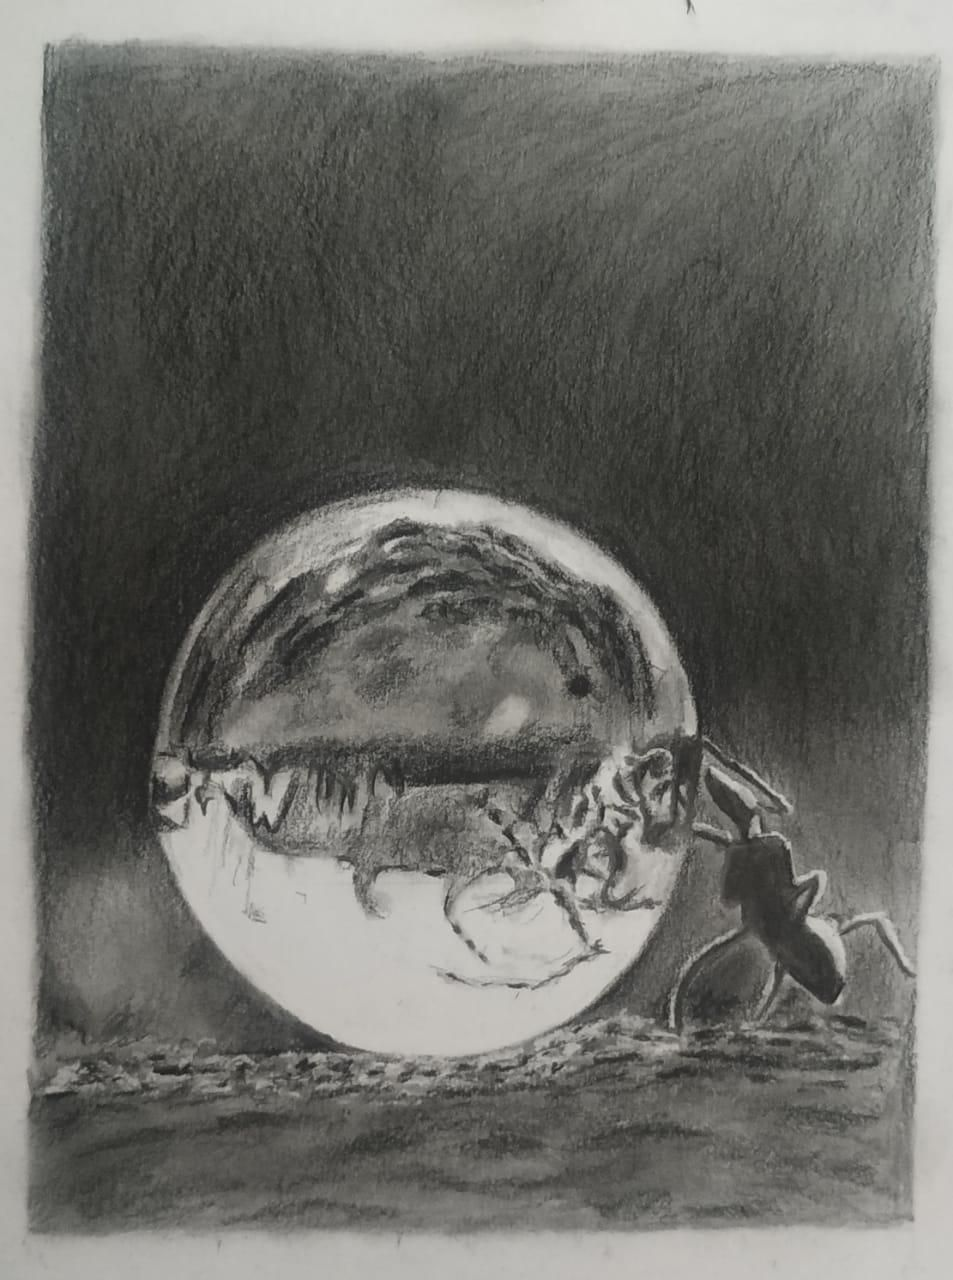 Water bubble - image 5 - student project